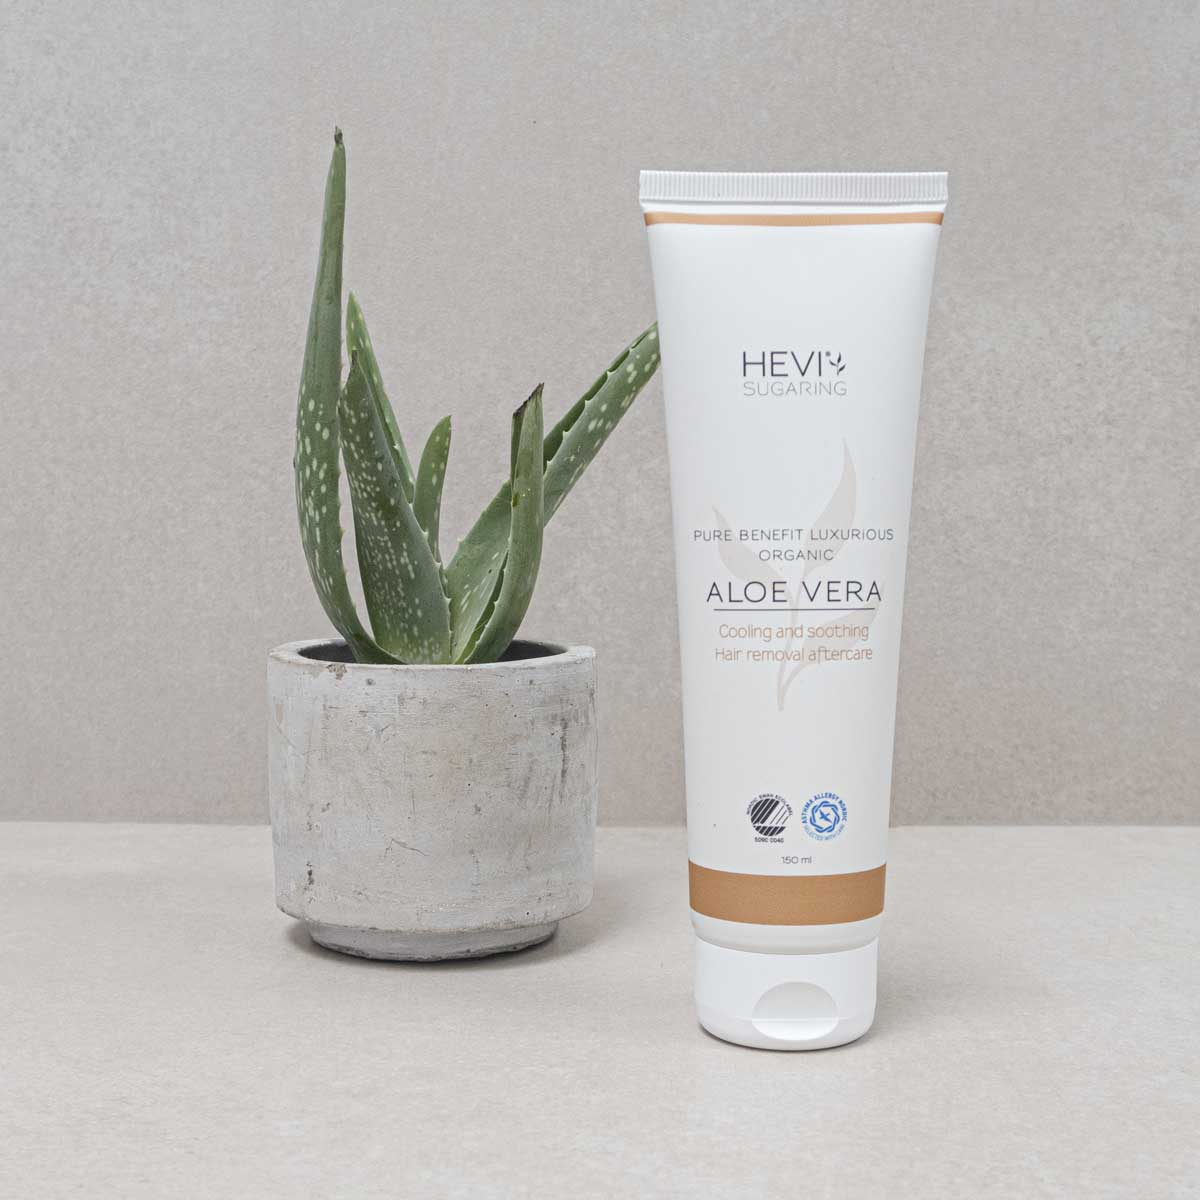 Pure Benefit Luxurious Aloe Vera